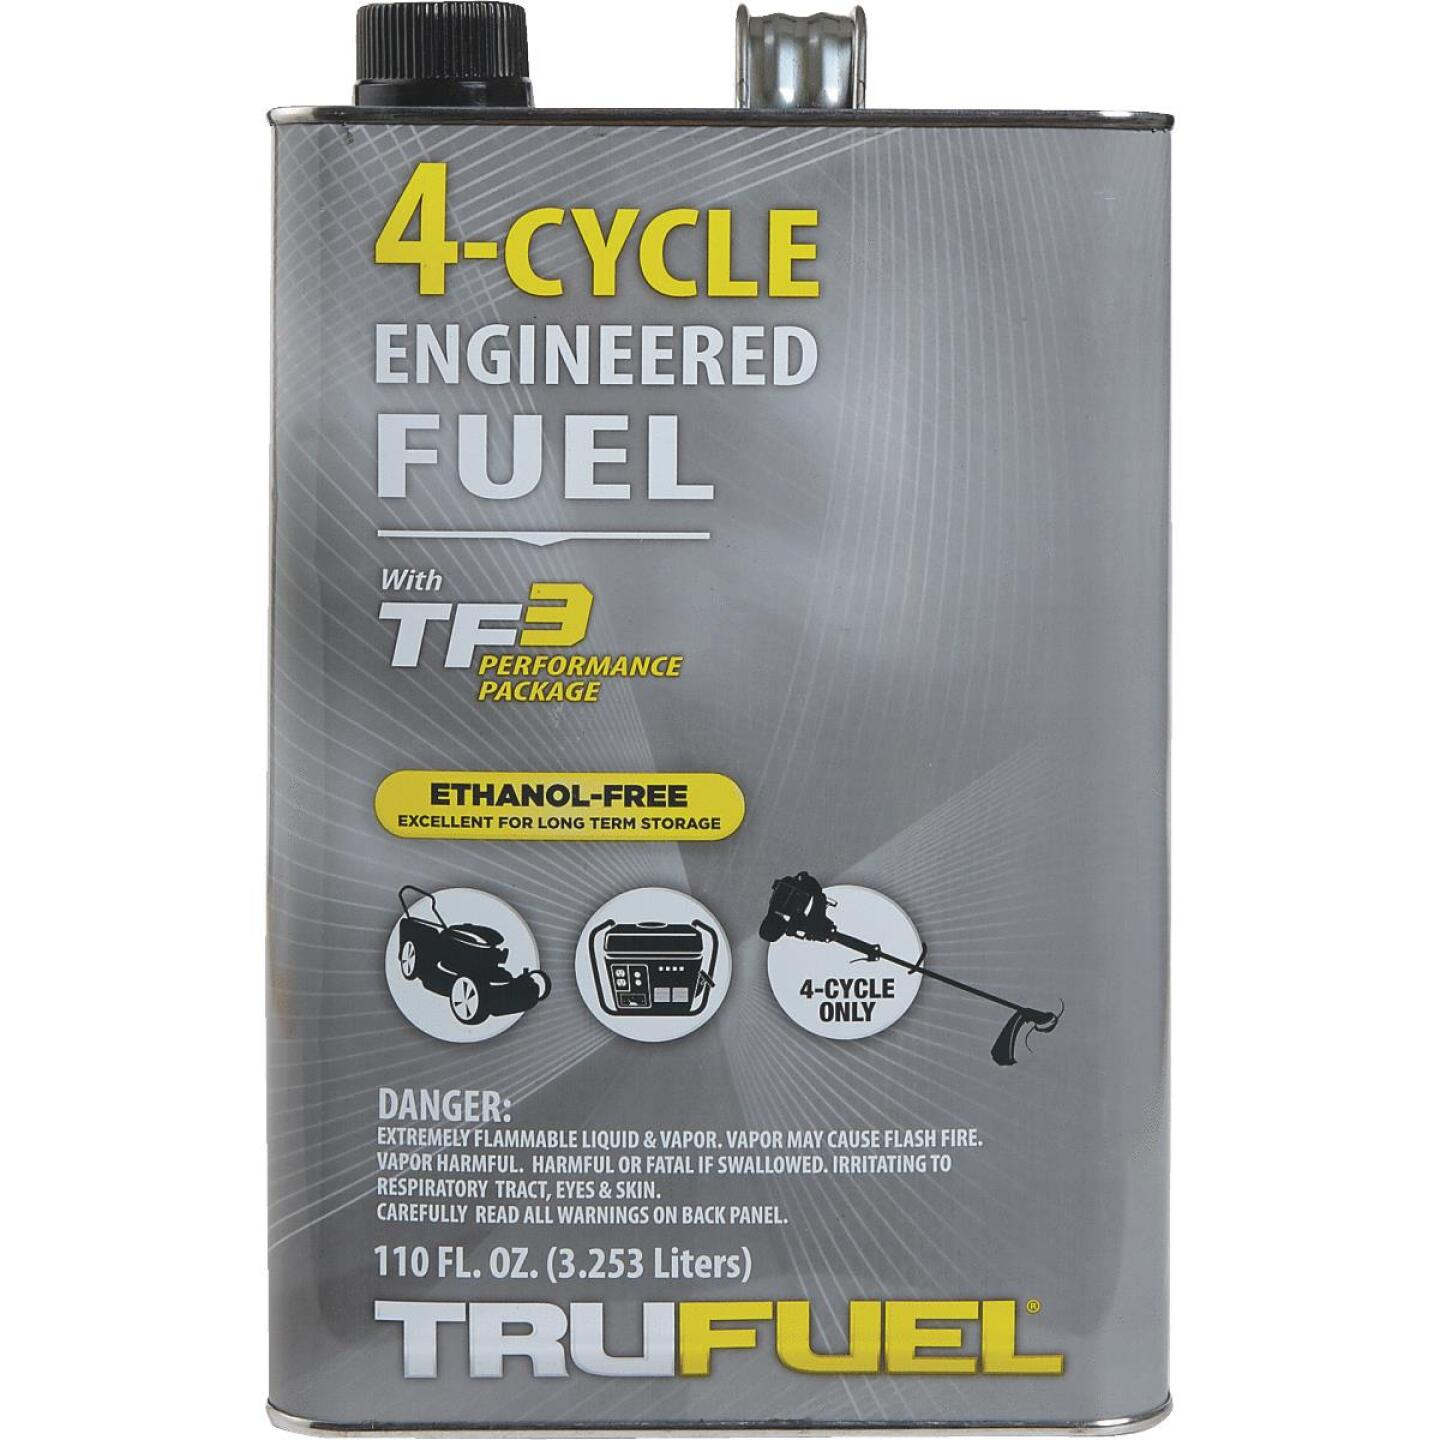 TruFuel 110 Oz. Ethanol-Free Small Engine 4-Cycle Fuel Image 2